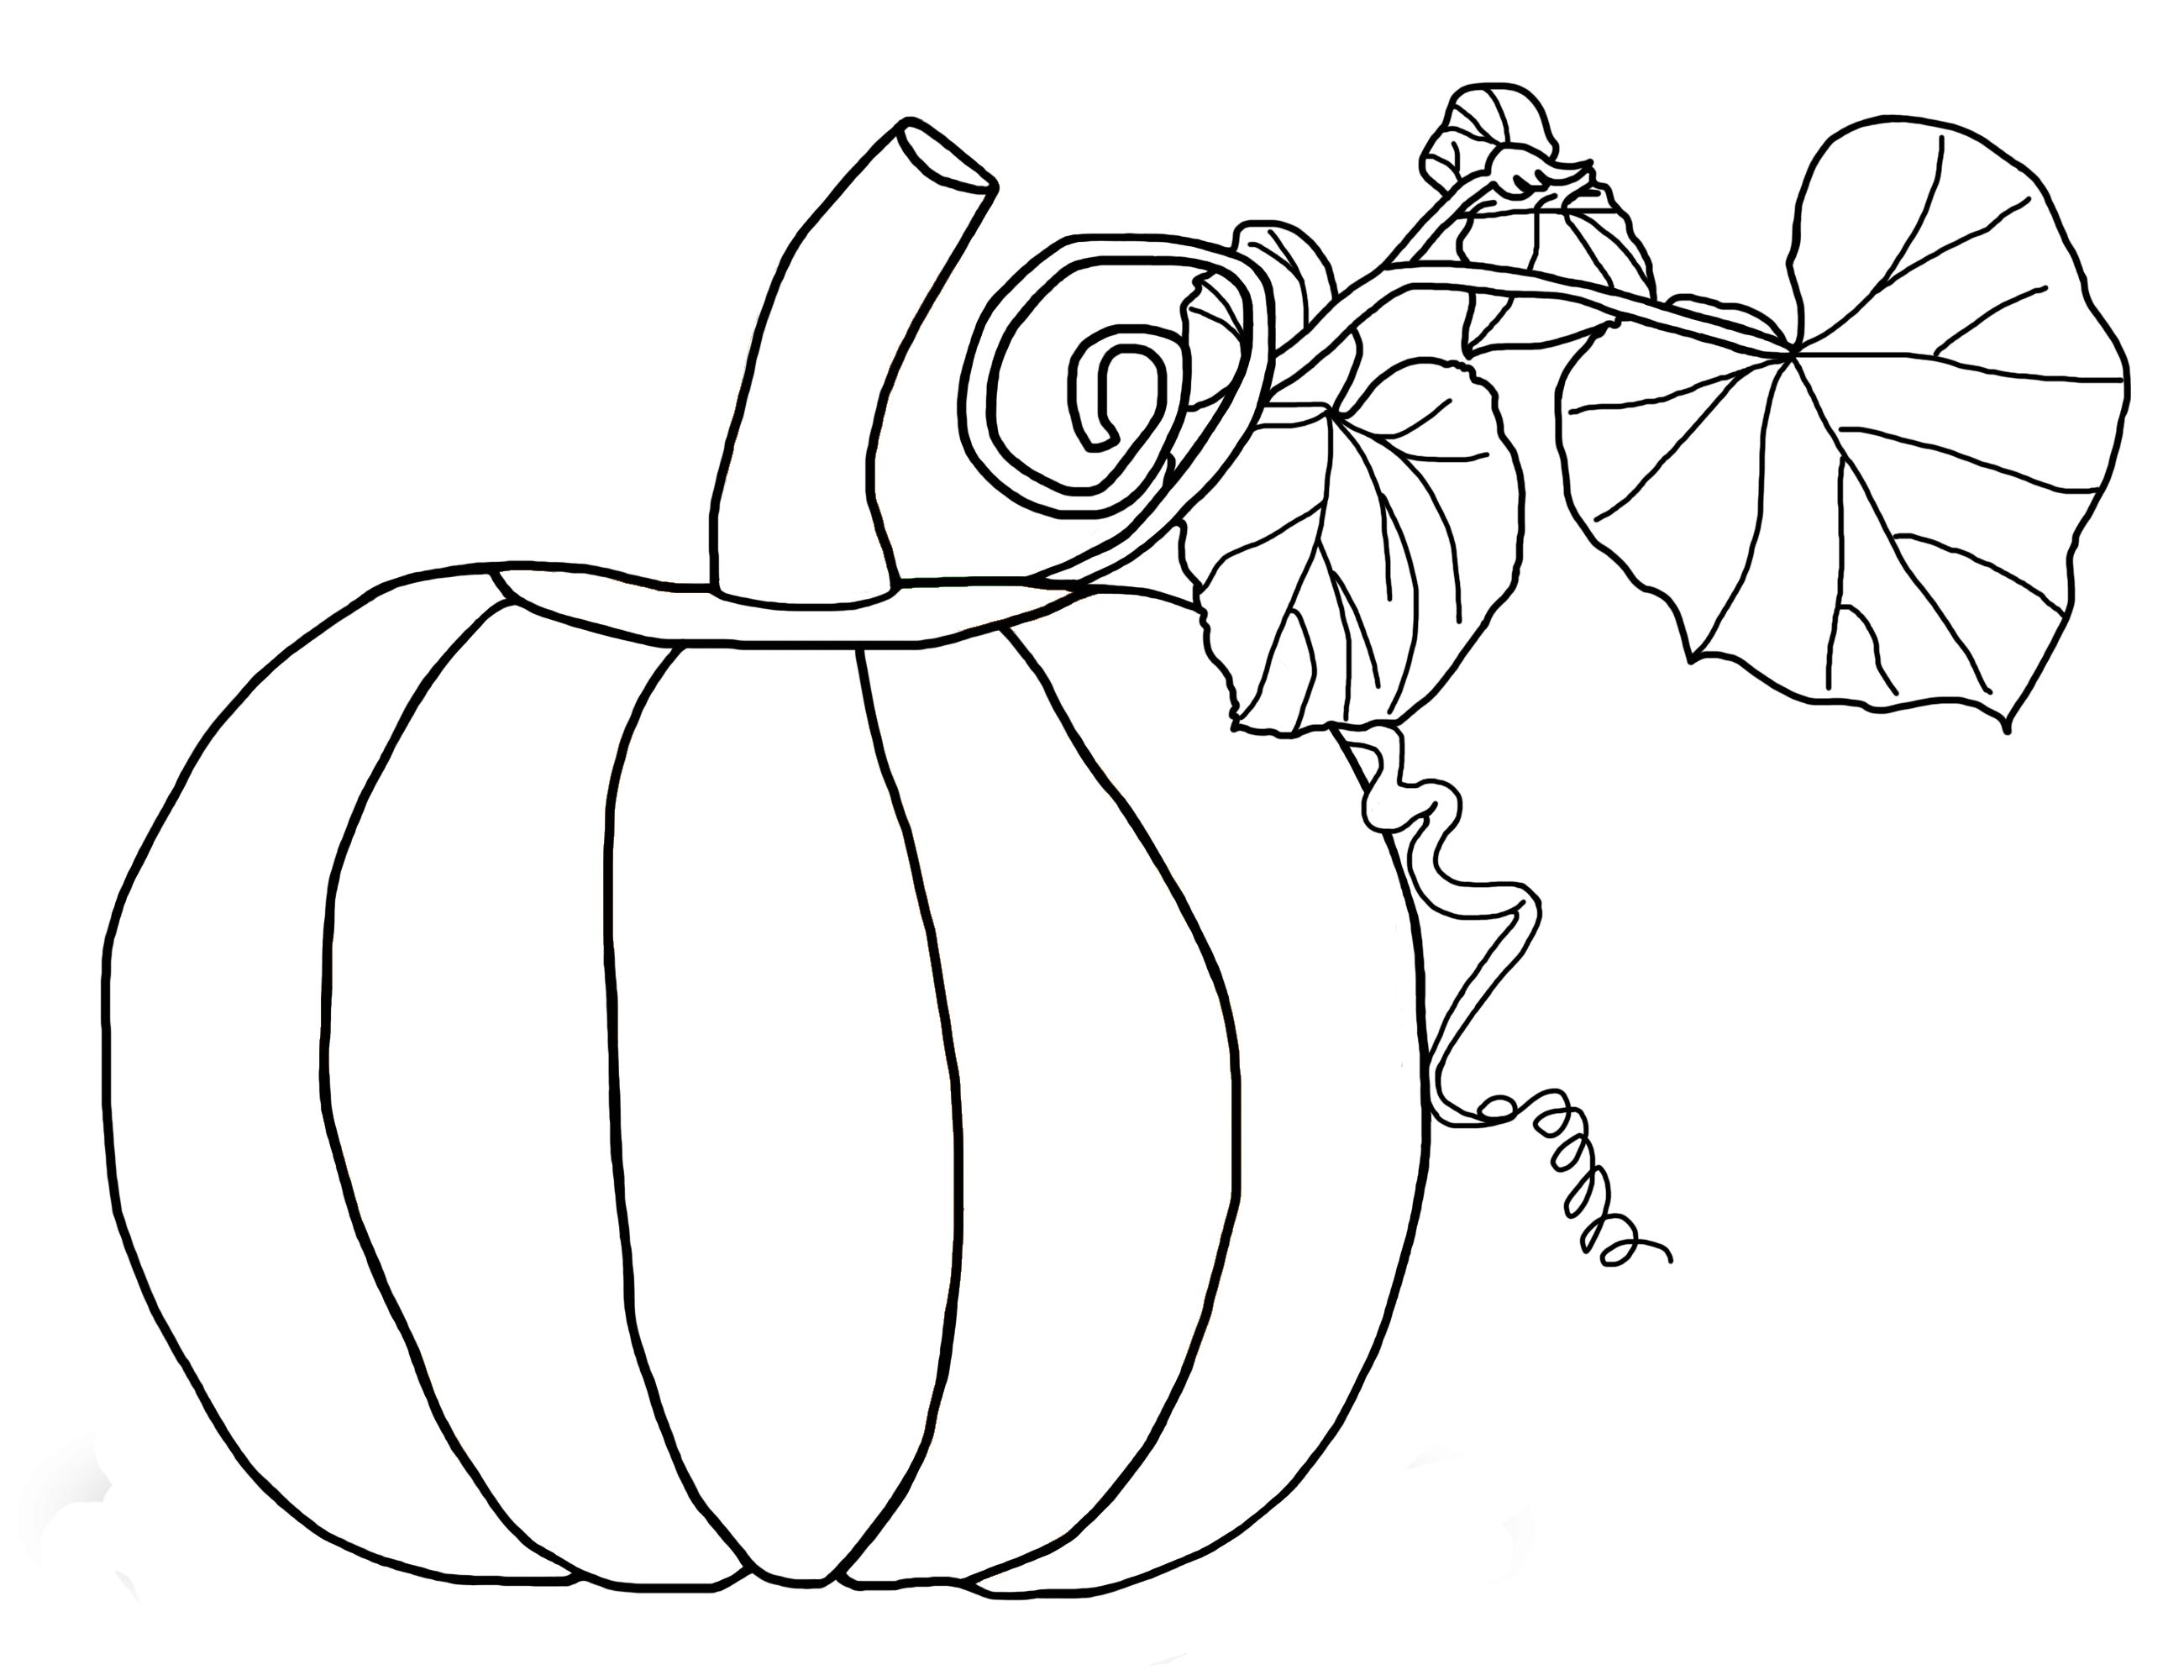 2600x2000 Pumpkin Coloring Pages Creative Pumpkin Coloring Pages That